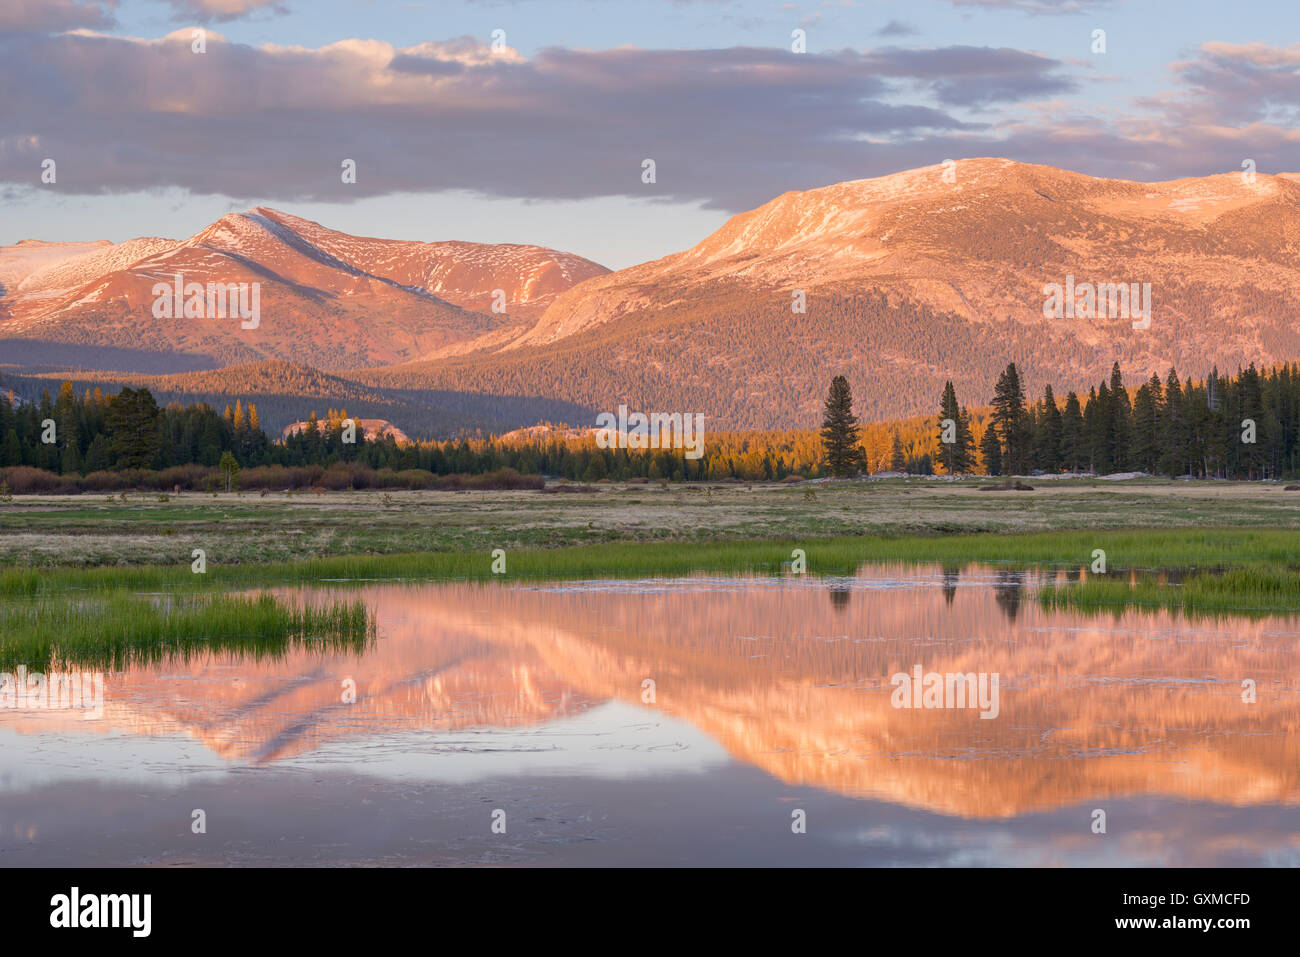 Tuolumne Meadows at sunset, Yosemite National Park, California, USA. Spring (June) 2015. - Stock Image